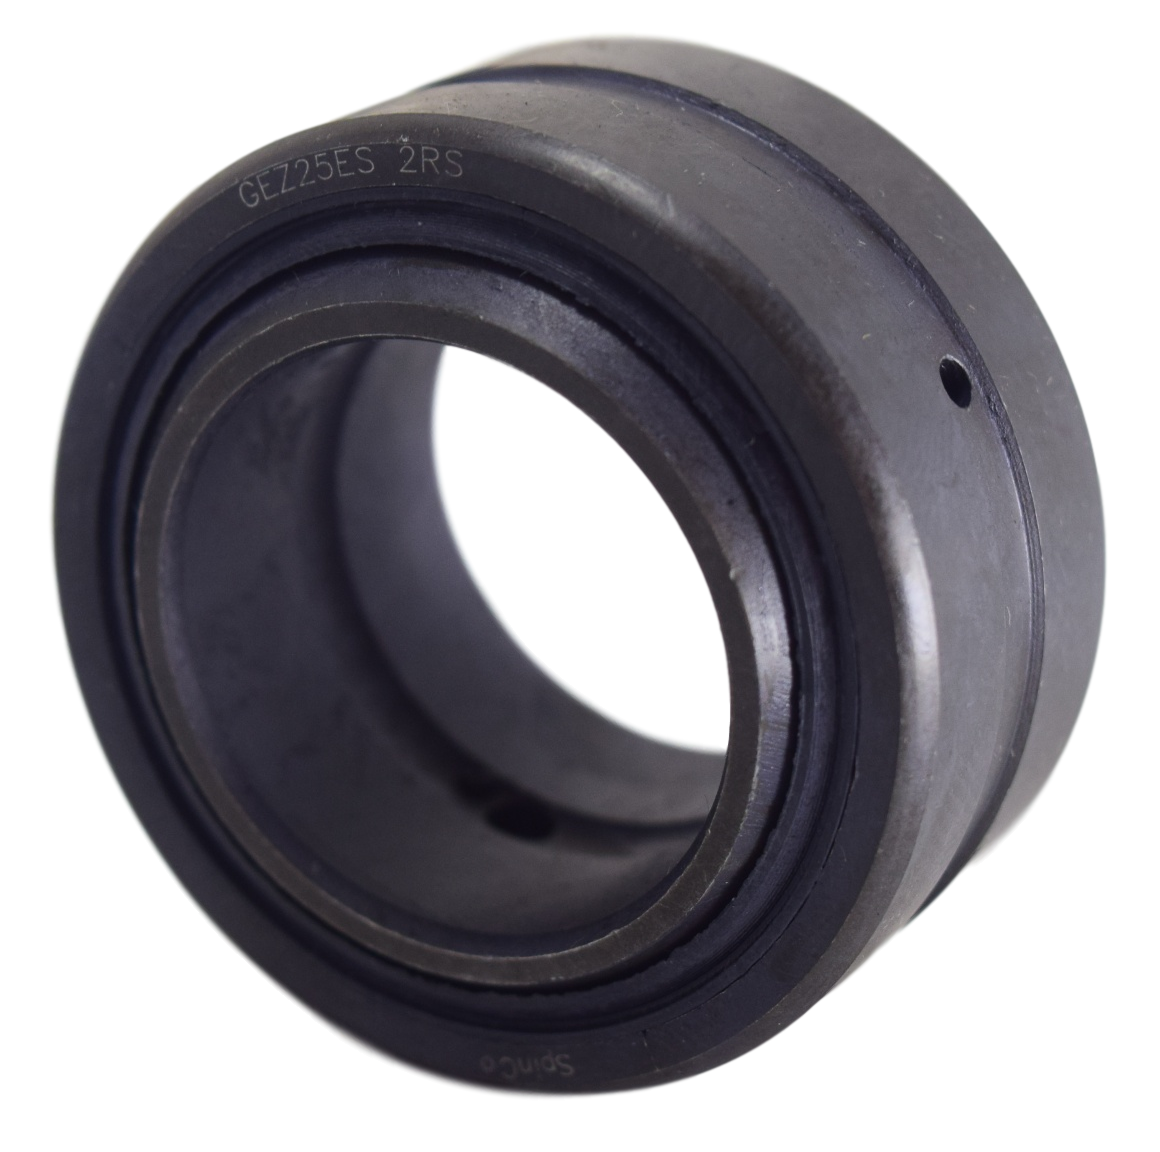 "GEZ25ES-2RS 1"" Sealed Spherical Plain Bearing Image"